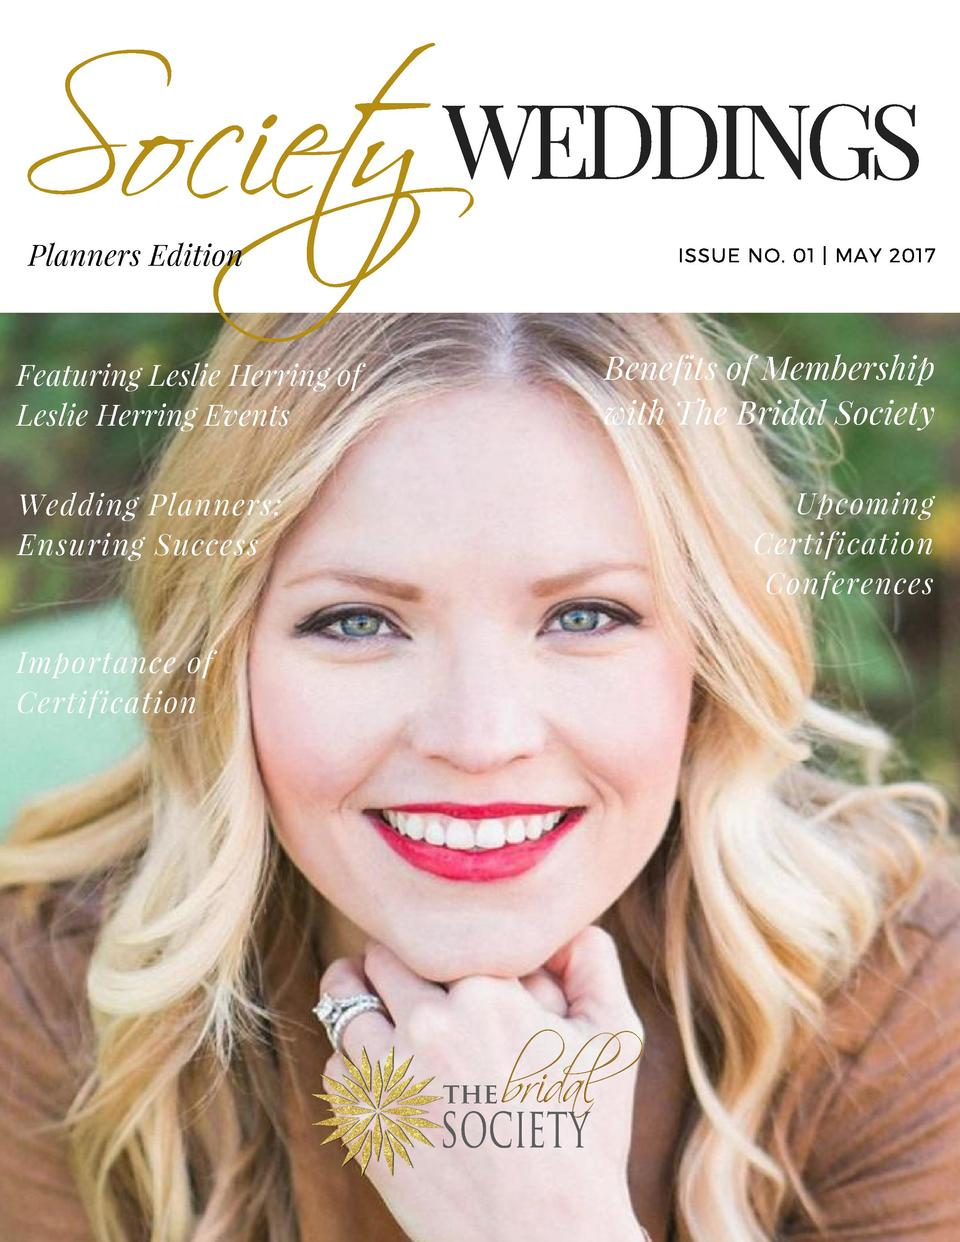 Society WEDDINGS Planners Edition  Featuring Leslie Herring of Leslie Herring Events   Wedding Planners  Ensuring Success ...